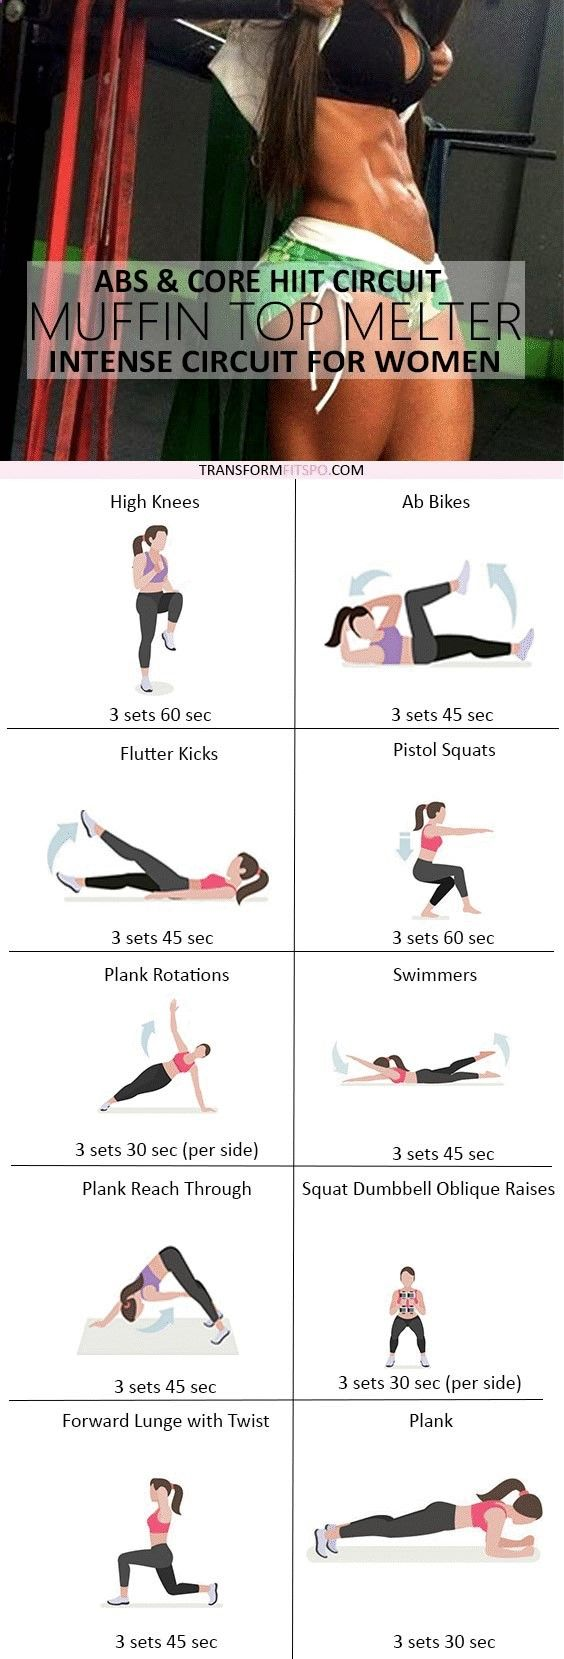 Follow Personal Trainer SuperDFitness at Pinterest.com/SuperDFitness Now and share if this workout gave you serious results! Read the post for all the workout info!